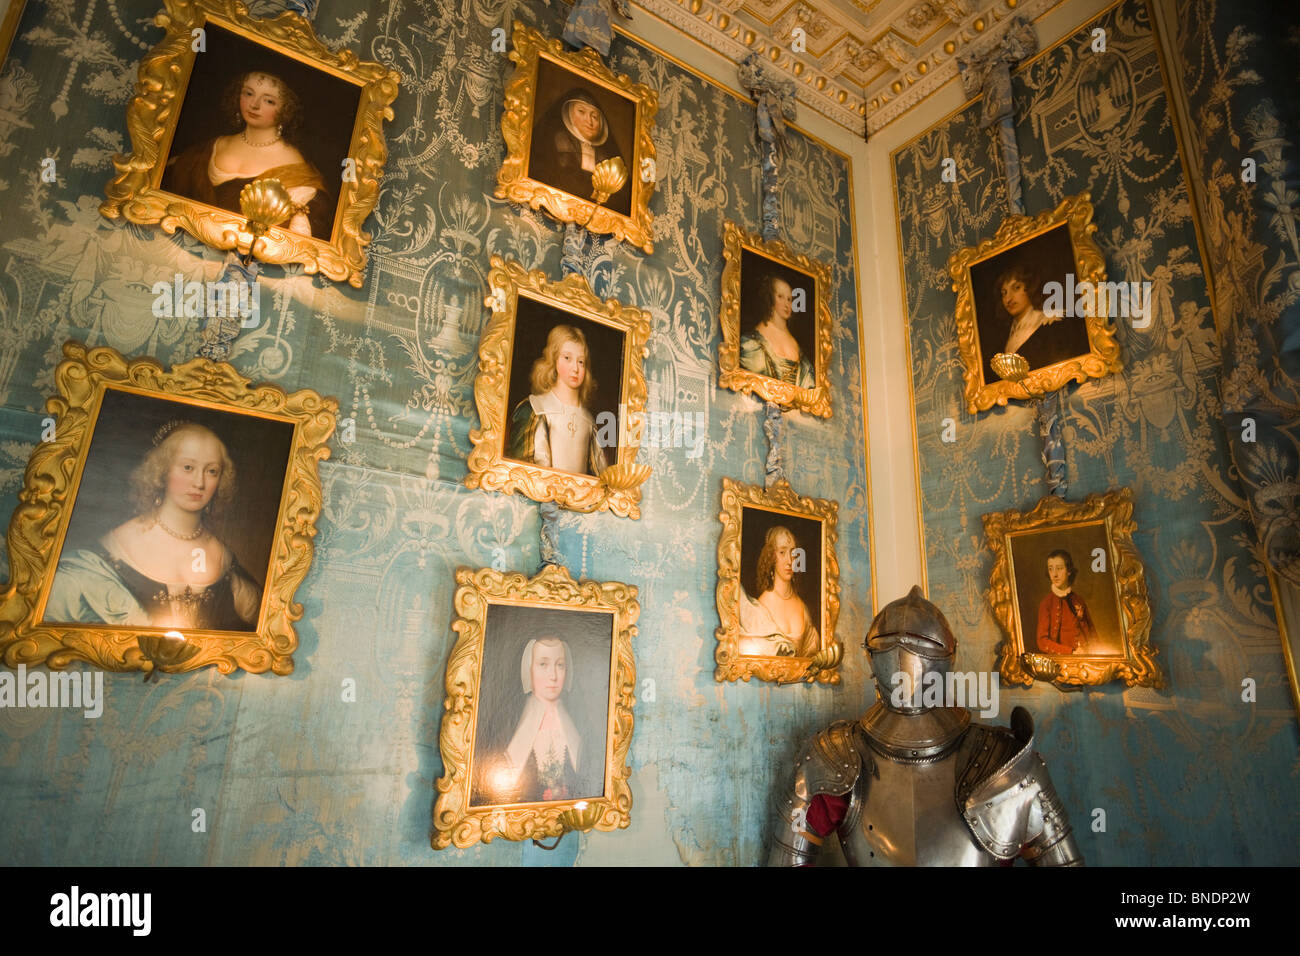 Picture frames and a suit of armor a room, Blue Room, Warwick Castle, Warwick, Warwickshire, England - Stock Image